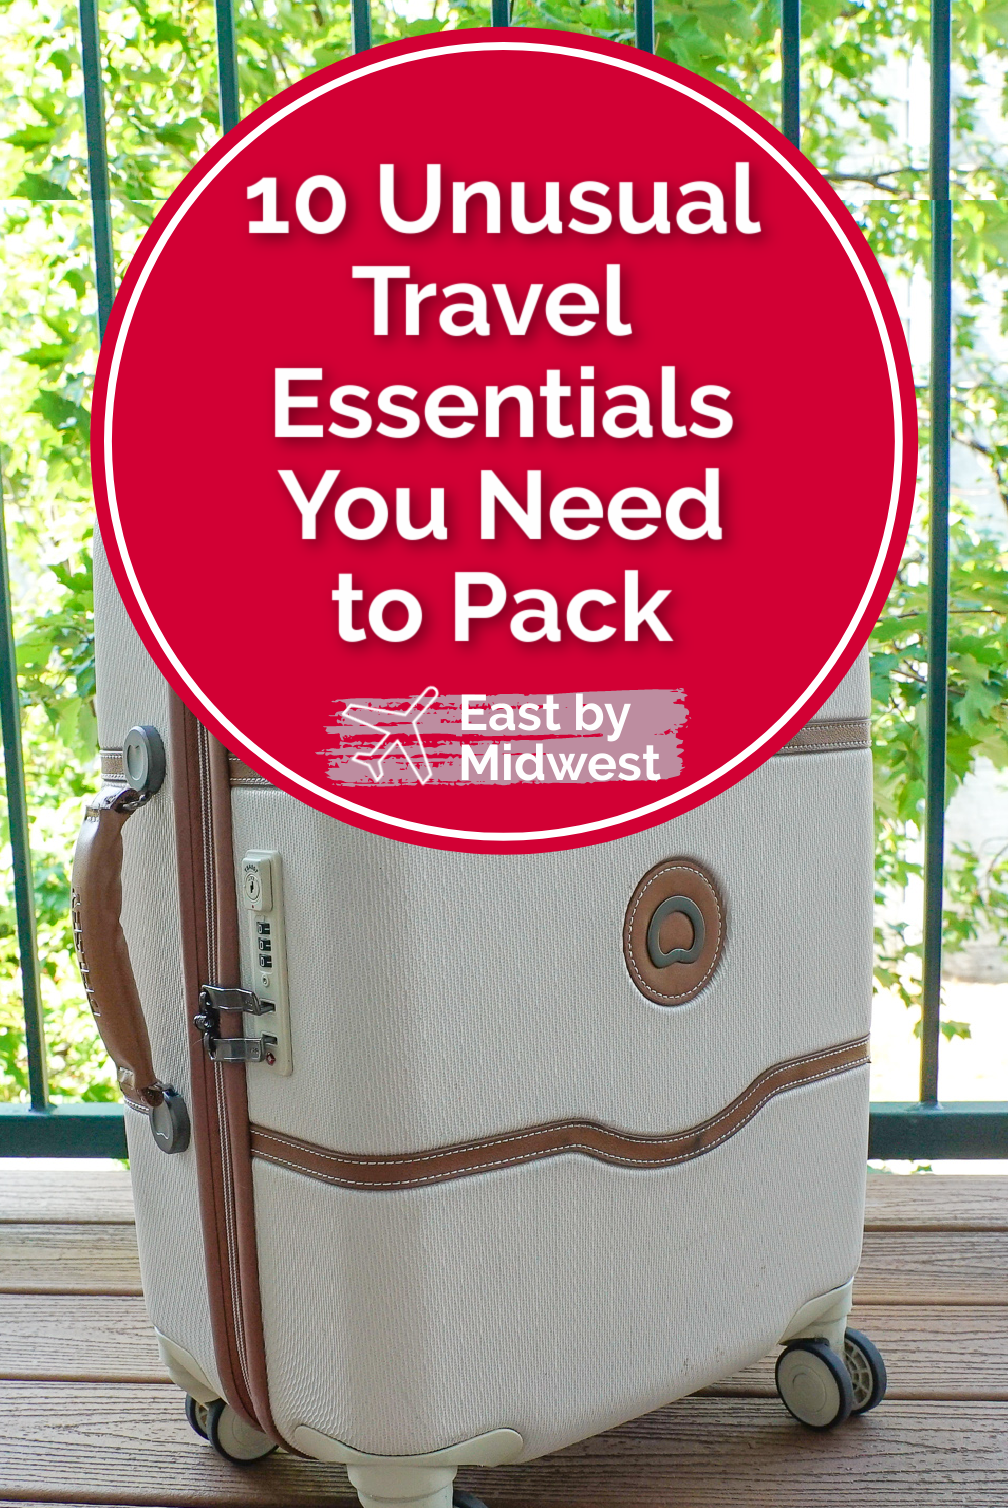 10 Unusual Travel Essentials You Need to Pack